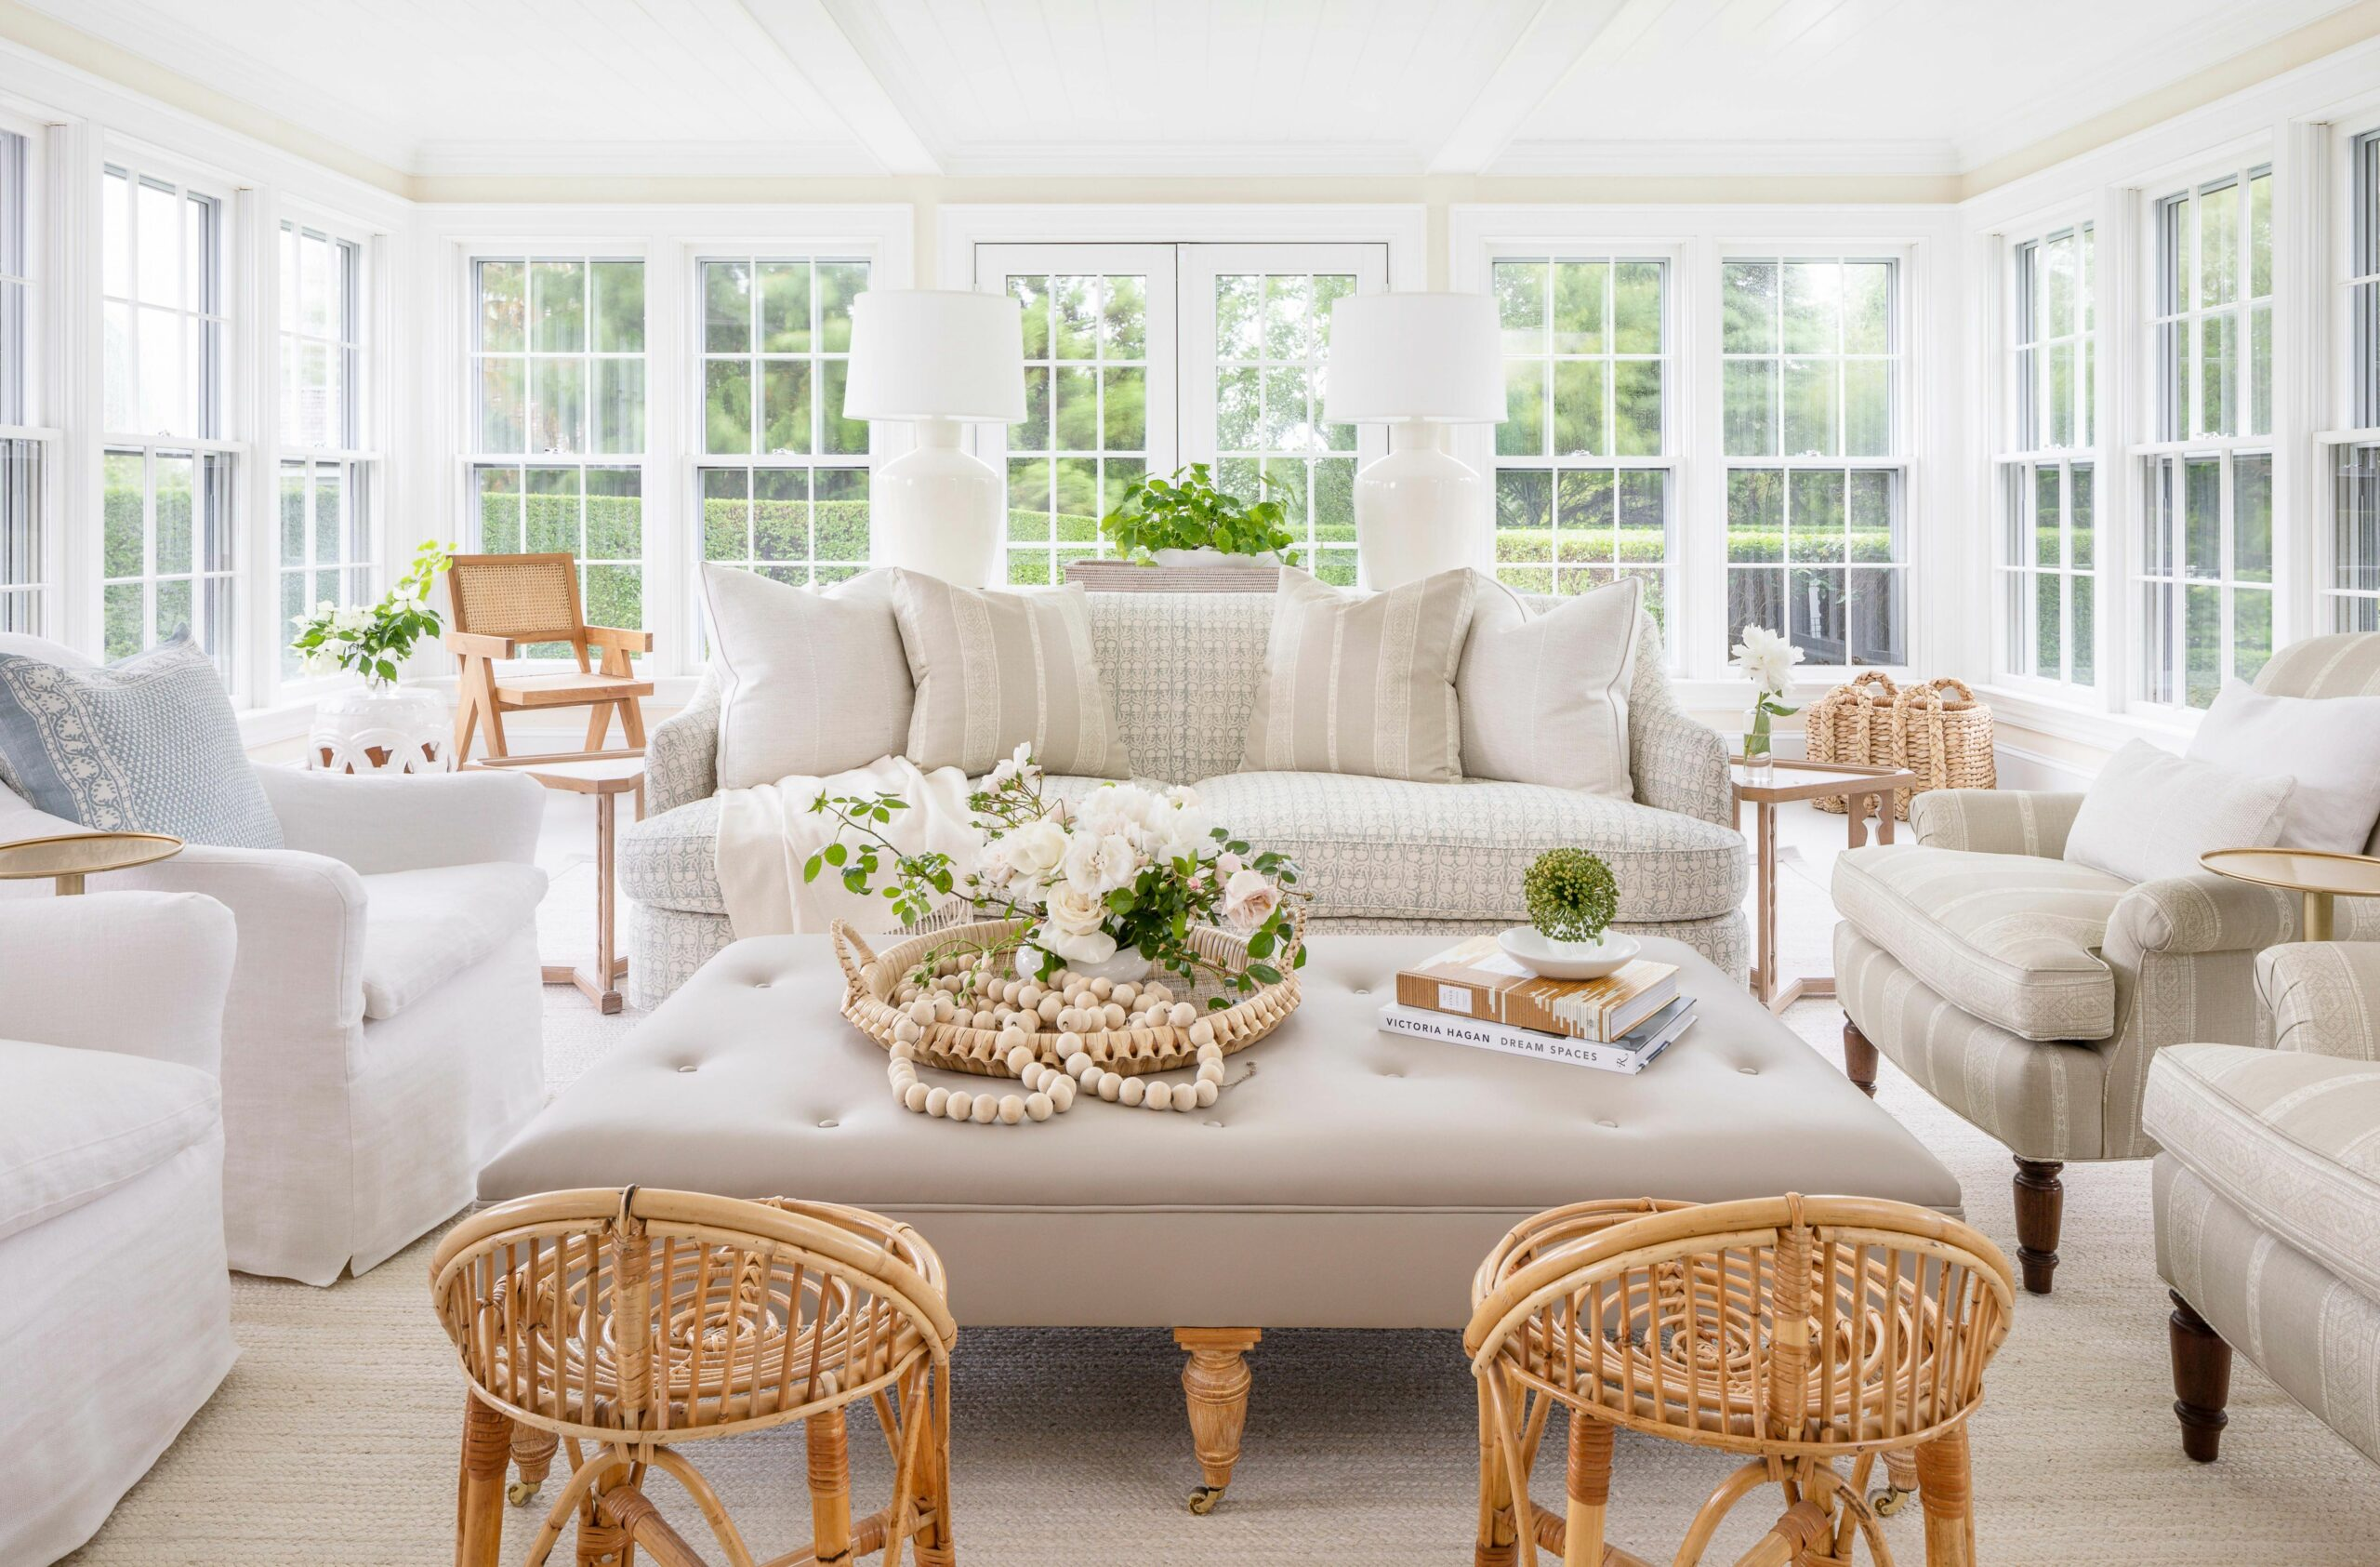 Home Decorating Trends 10 - House Beautiful Next Wave Designer ..